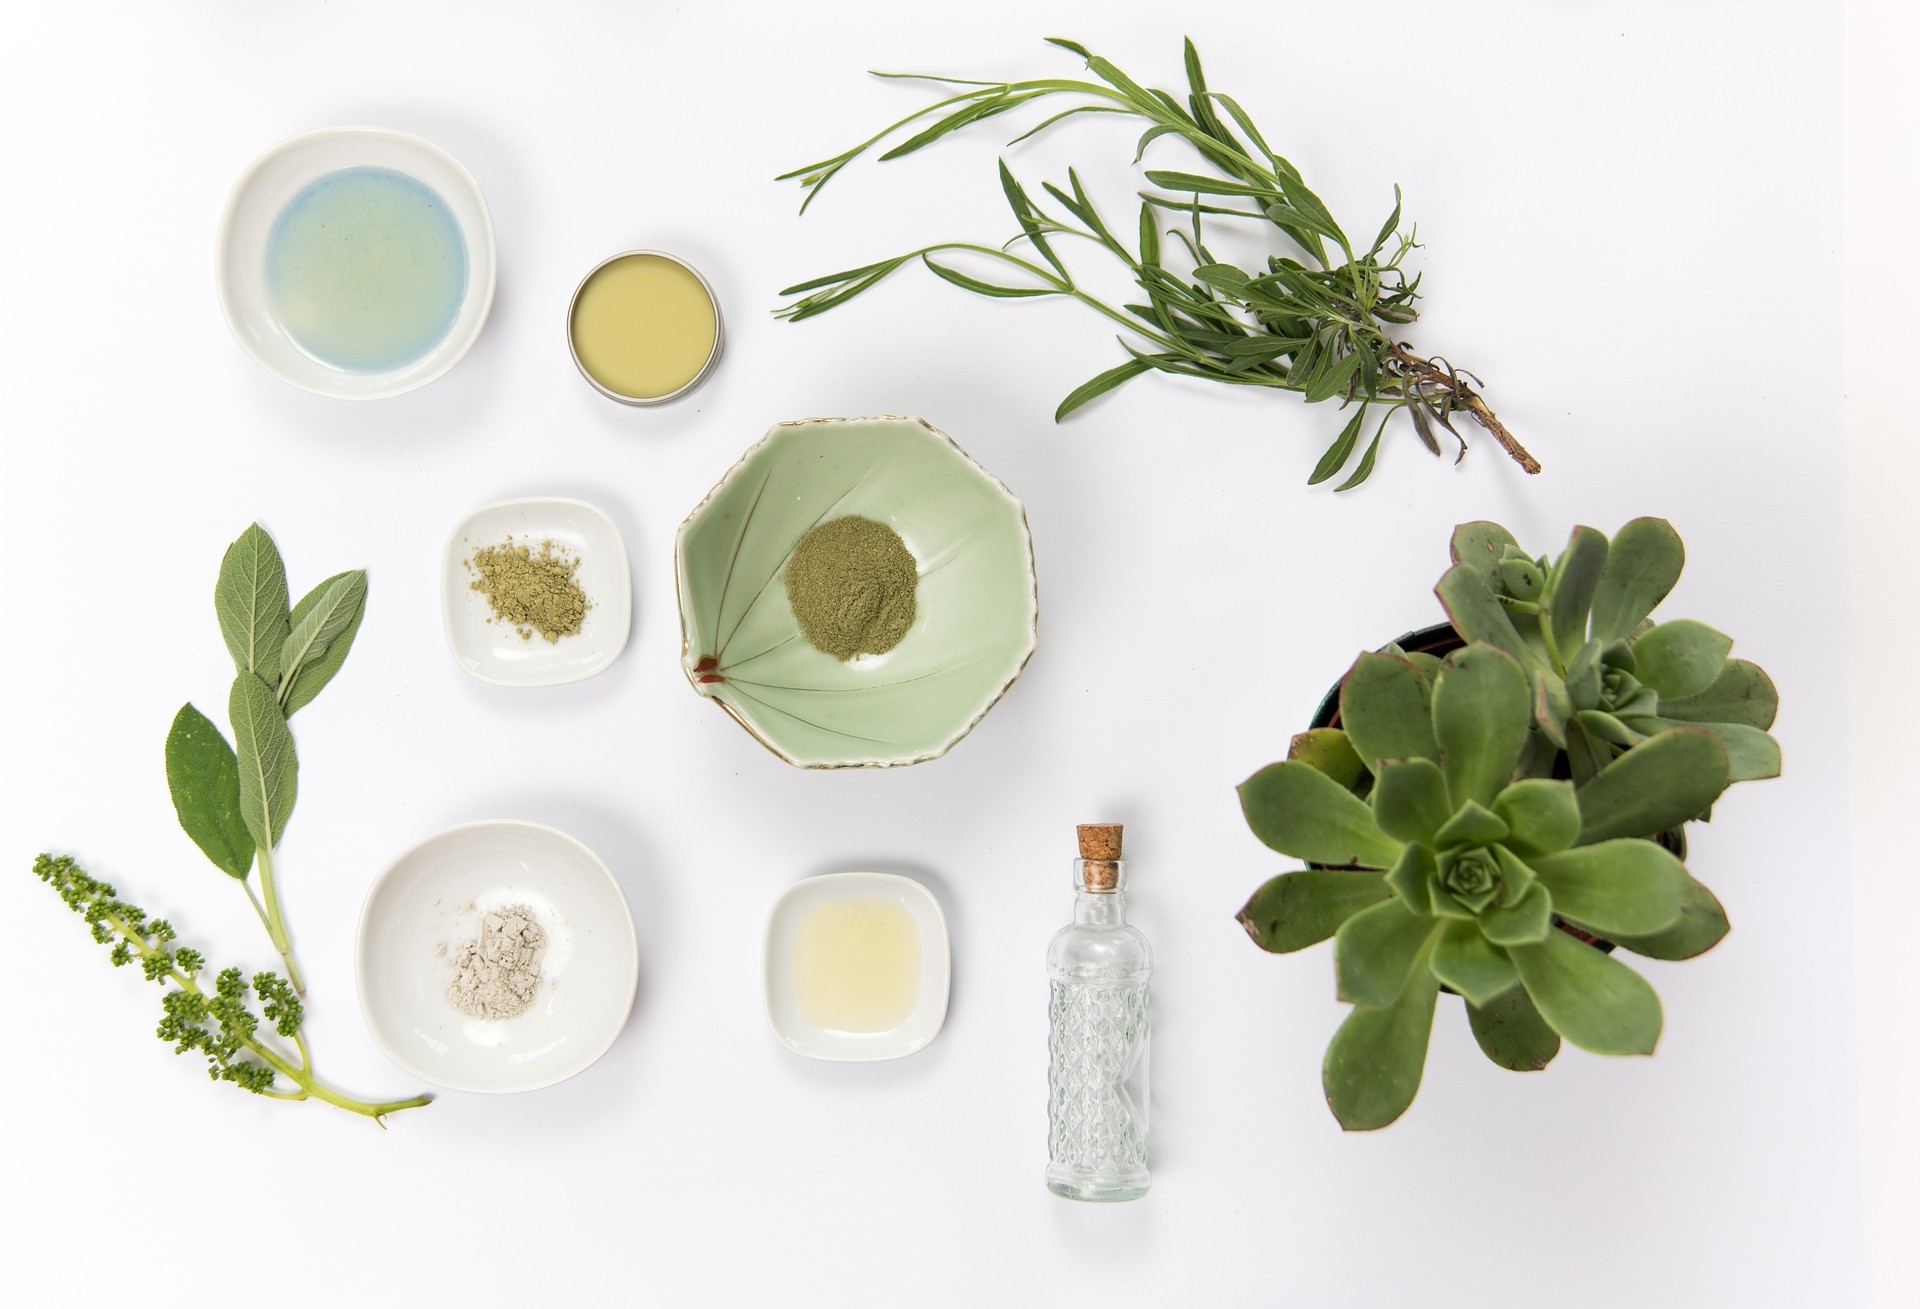 Do You Really Need Preservatives in Homemade Cosmetics?